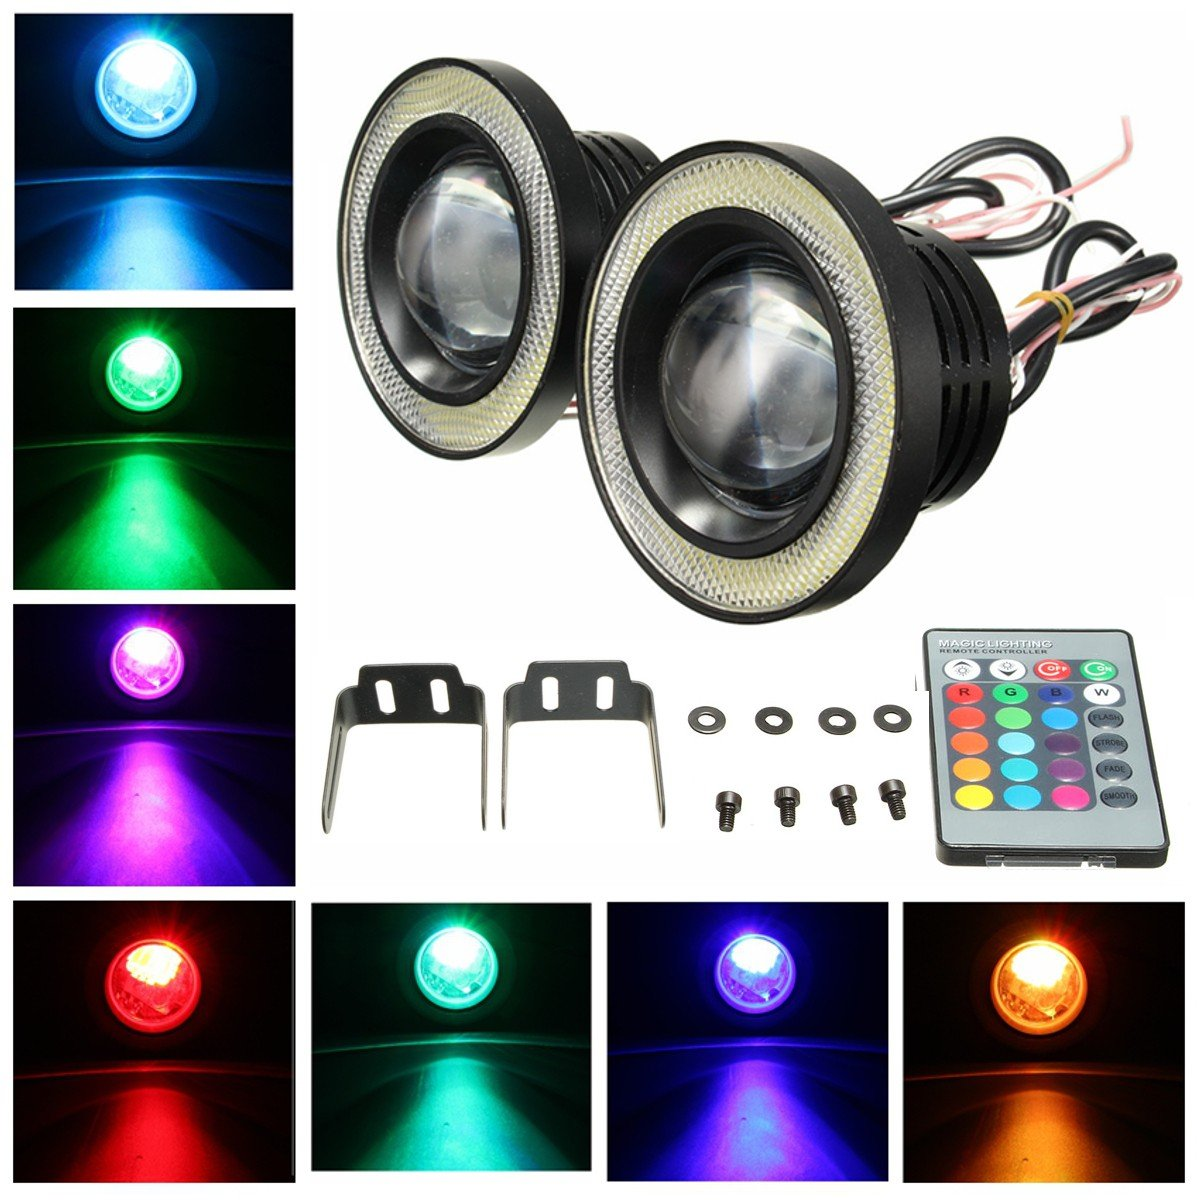 WCHAOEN Wireless Control 3.5inch LED RGB Color Fog Lights White Angel Eye Rings Car Lights New car light